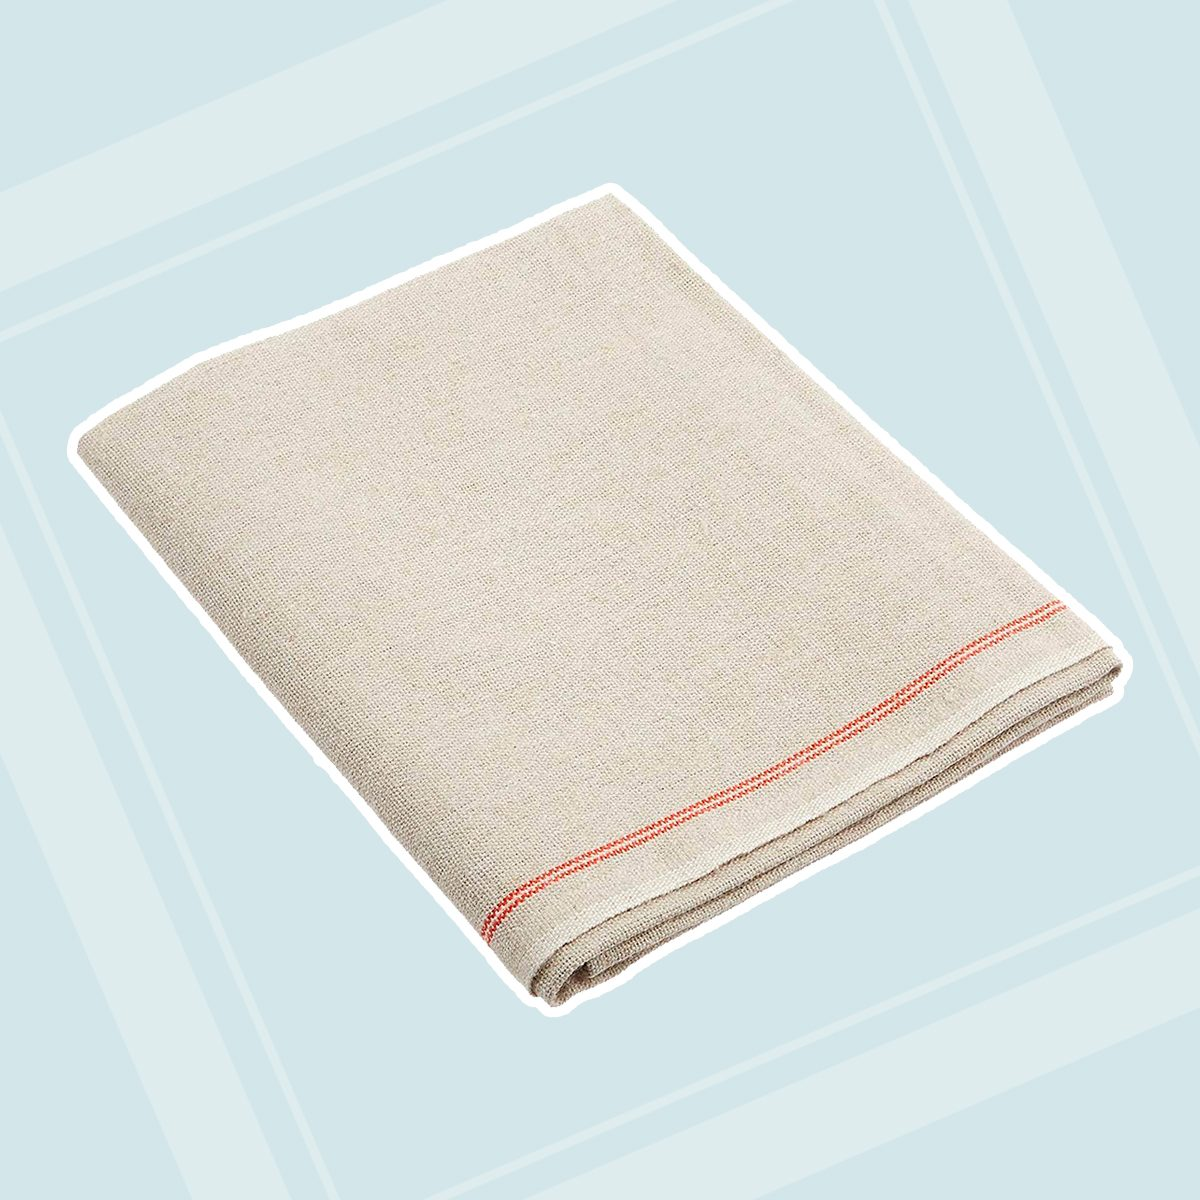 "Premium Professional Bakers Couche - 35""x26"", 100% Flax Linen Heavy Duty Proofing Cloth from Tissage Deren of France, with One Bonus Mure & Peyrot Fixed Blade Lame, by BrotformDotCom"